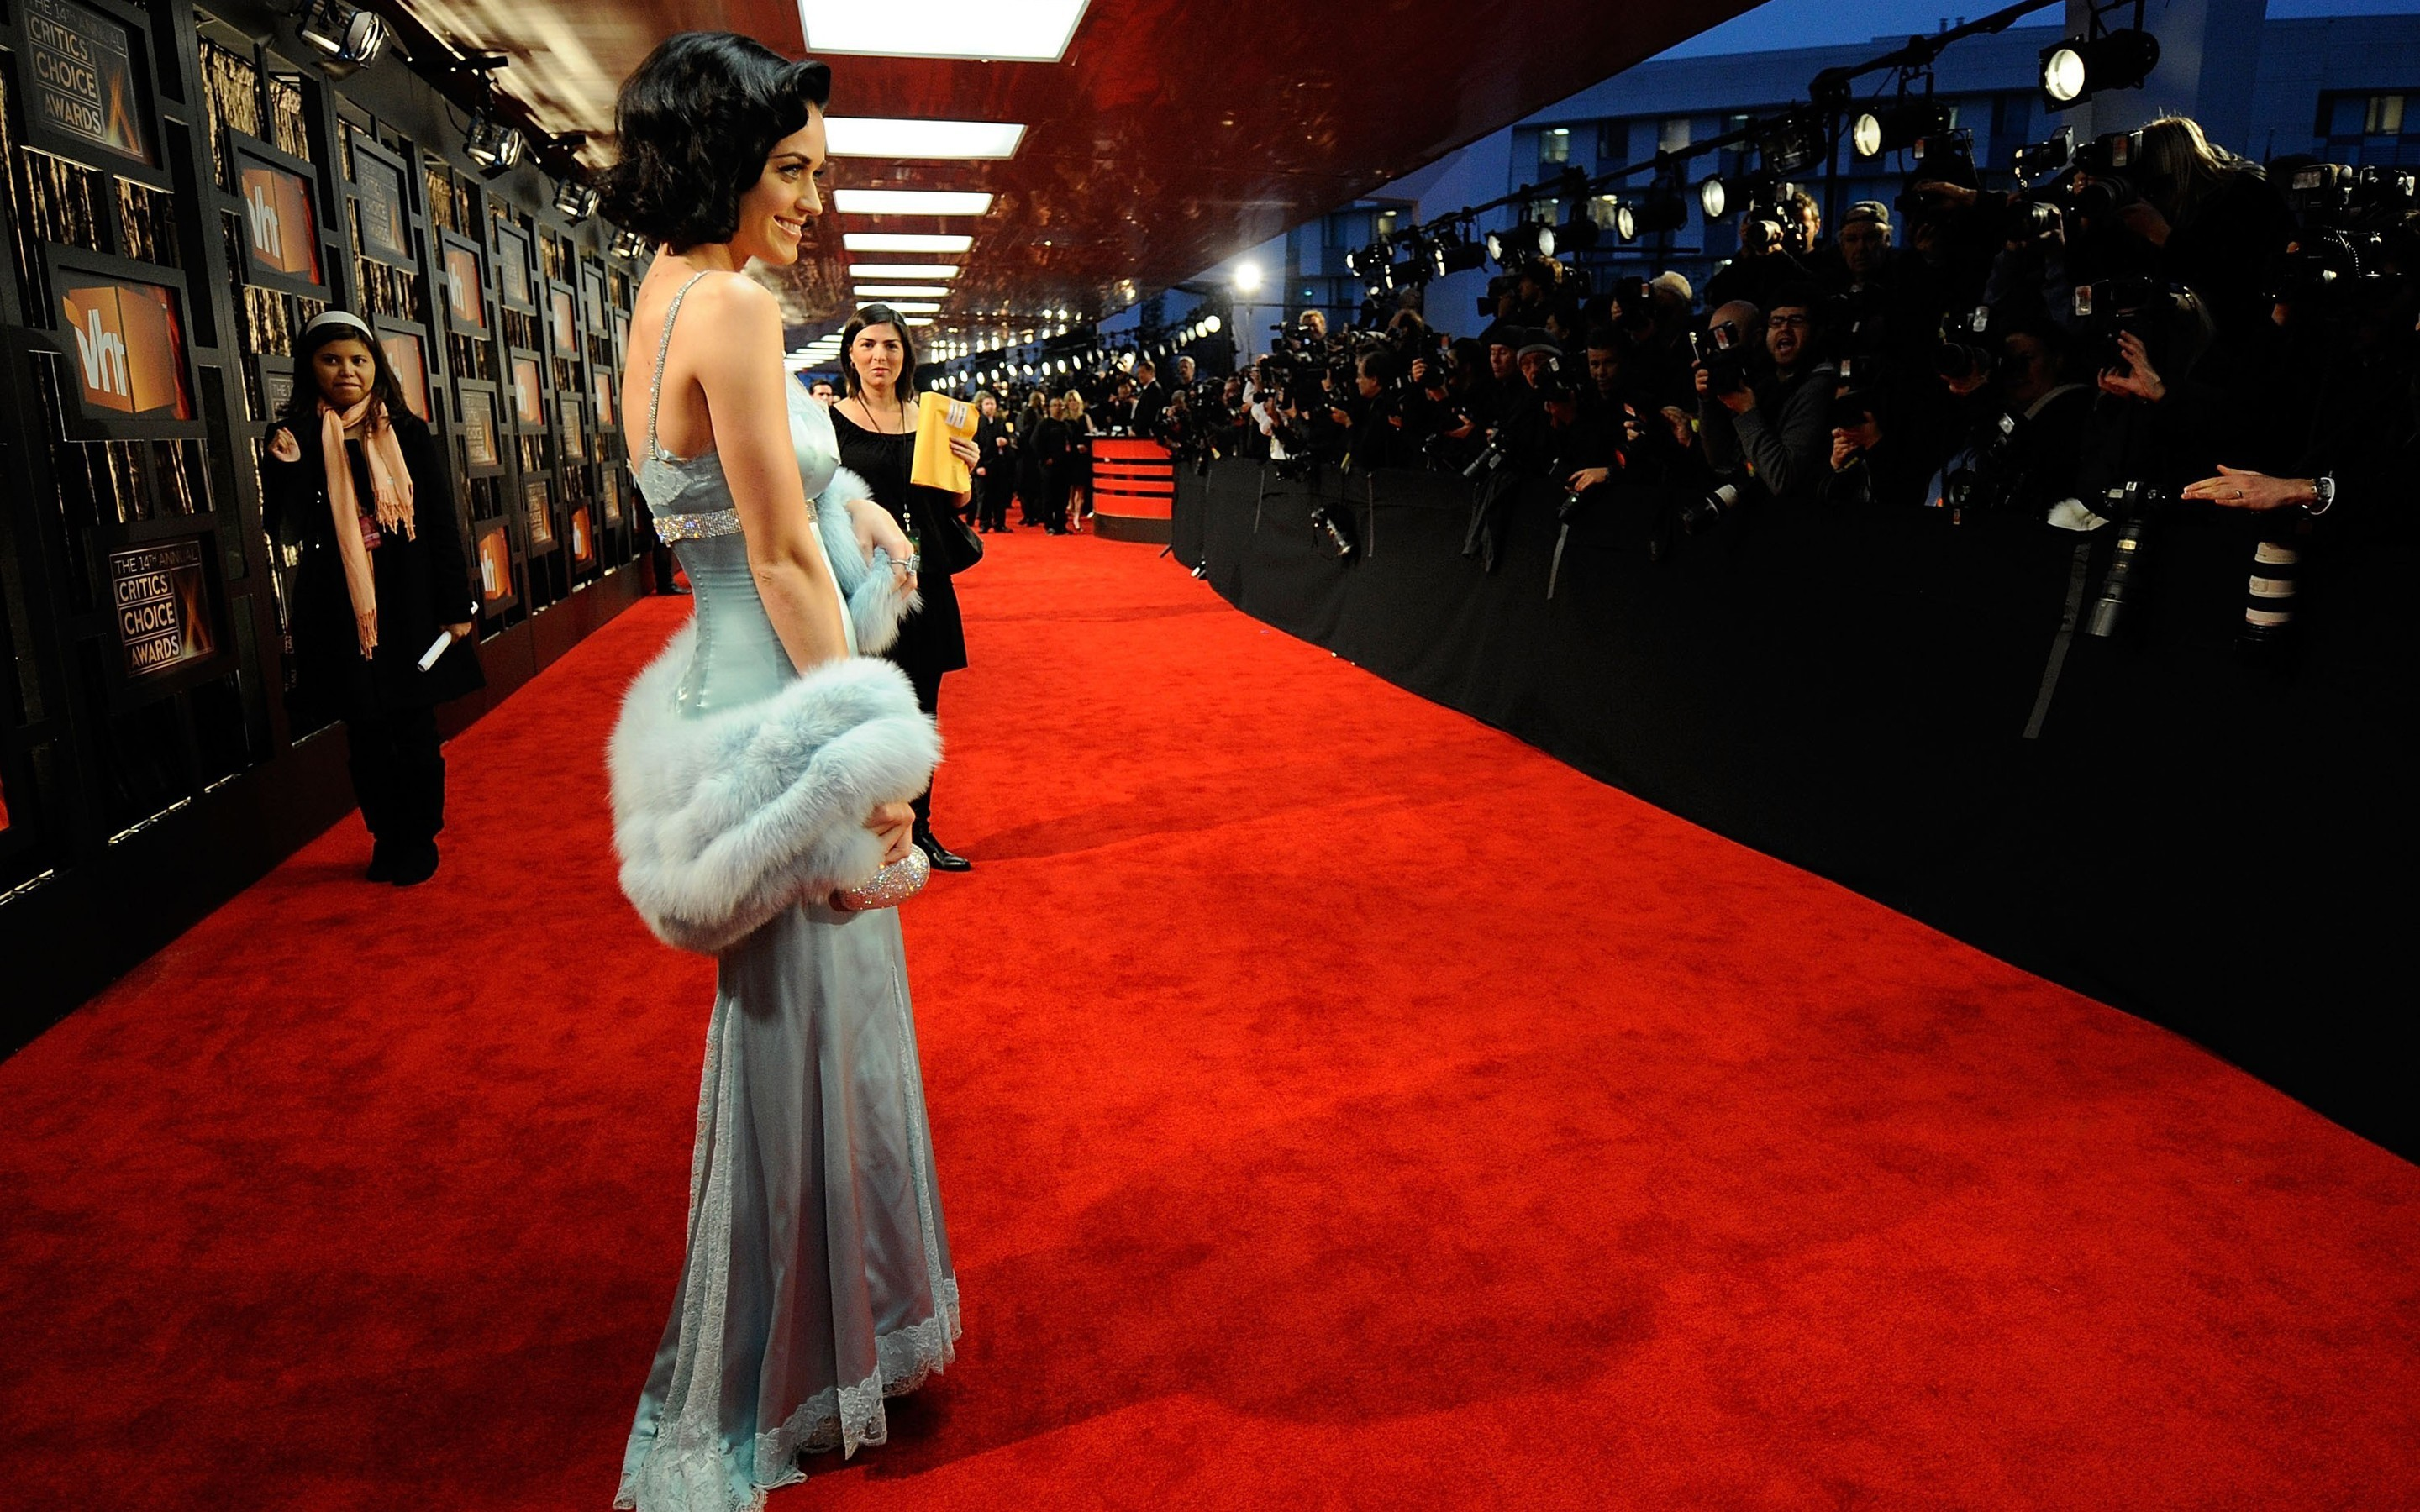 Red Carpet Wallpapers Custom HD 29 Red Carpet Wallpapers 2880x1800